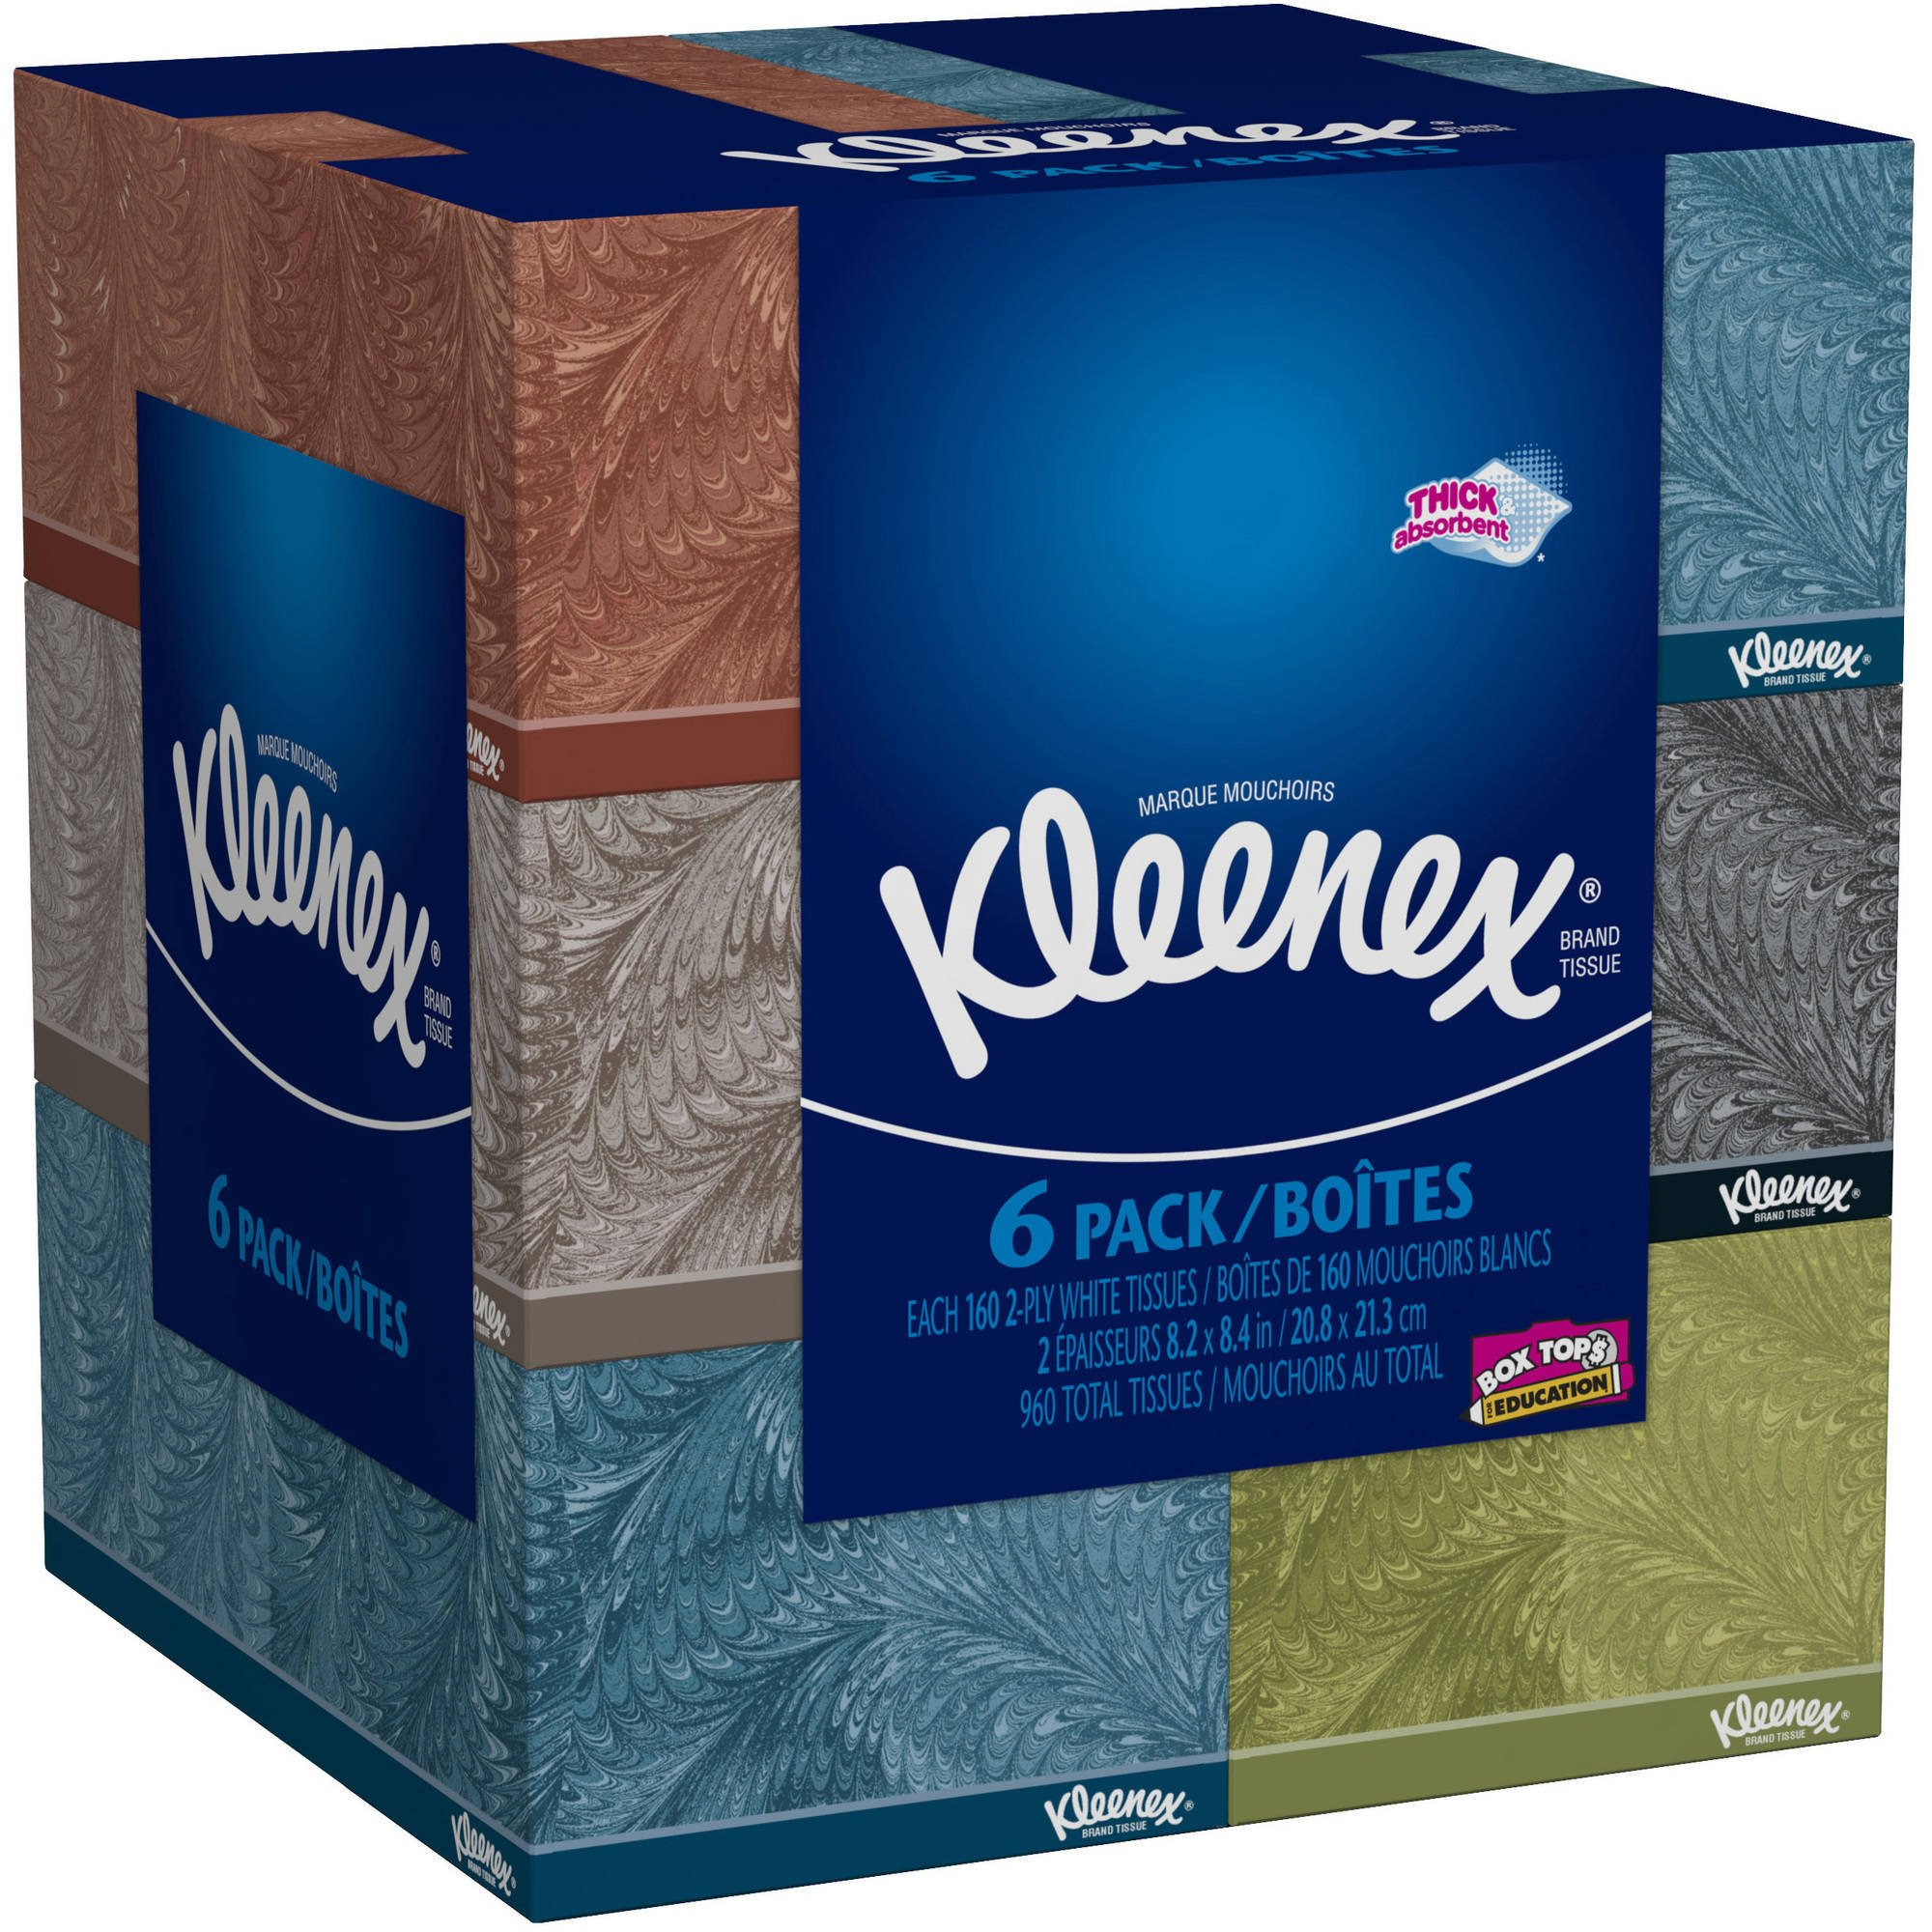 Kleenex 715821386393 Everyday Facial 160 Tissues Per Flat Box, Pack of 6, kkkkk